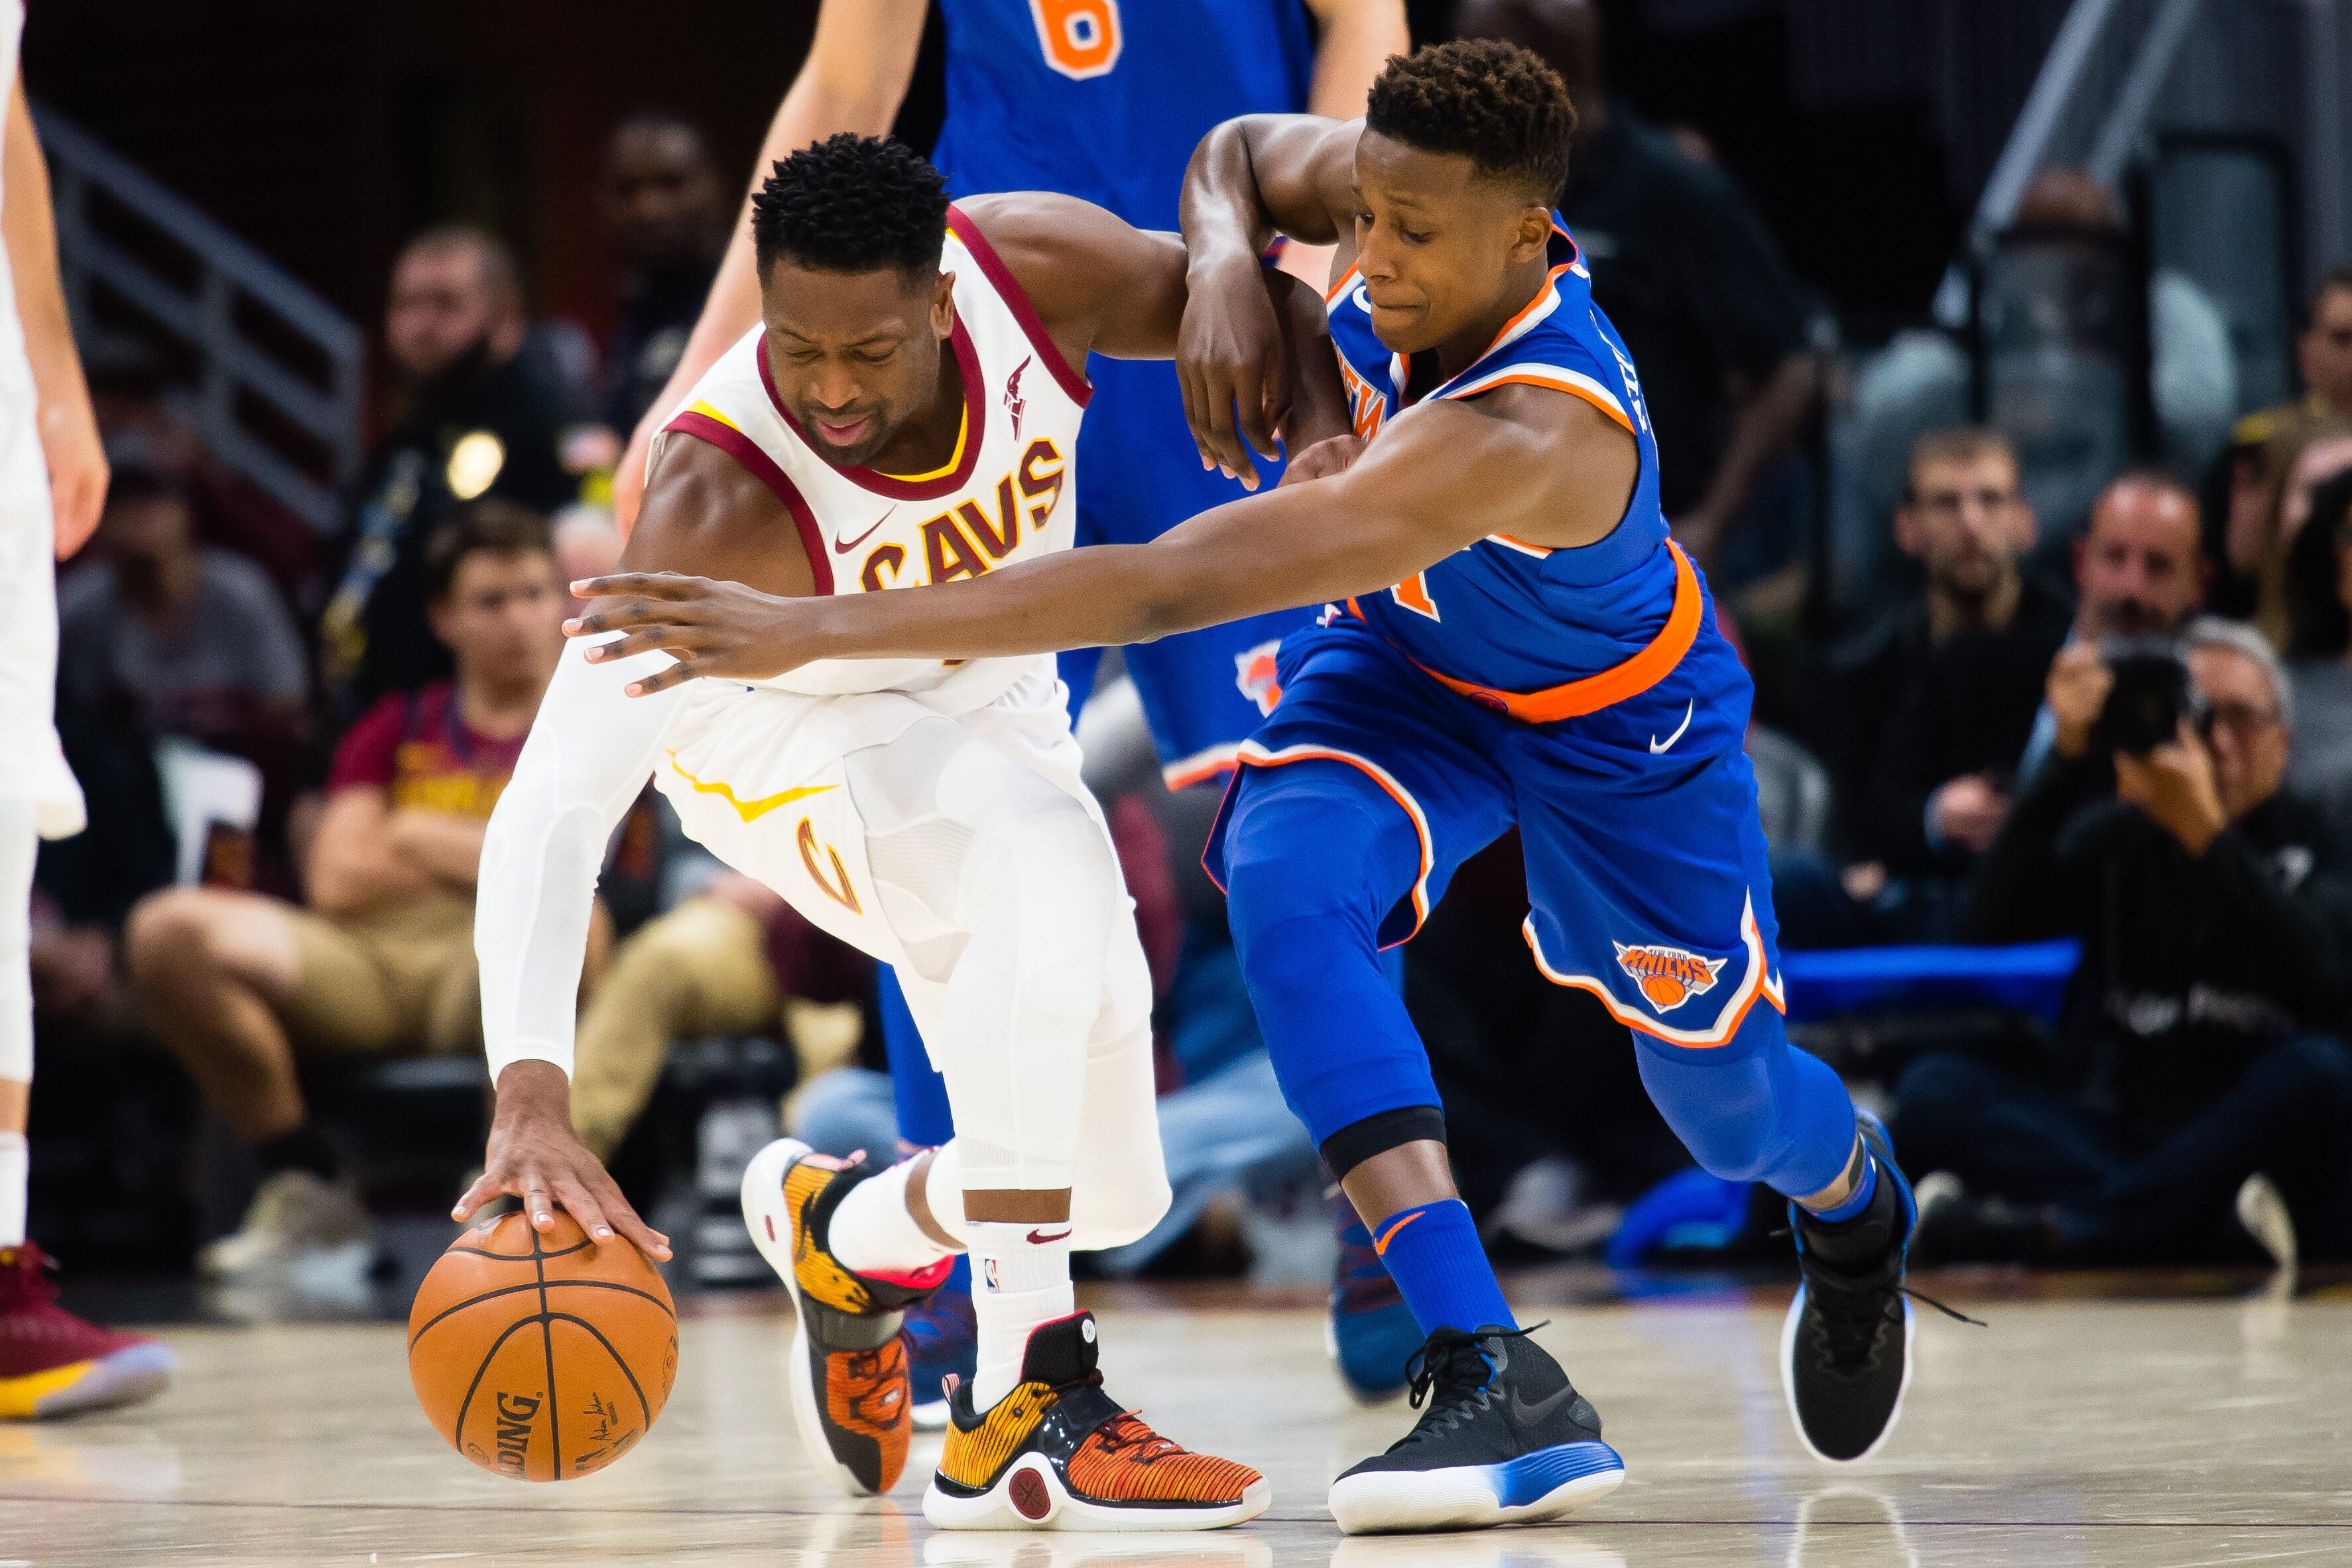 Cleveland Cavaliers: What we learned vs. New York Knicks